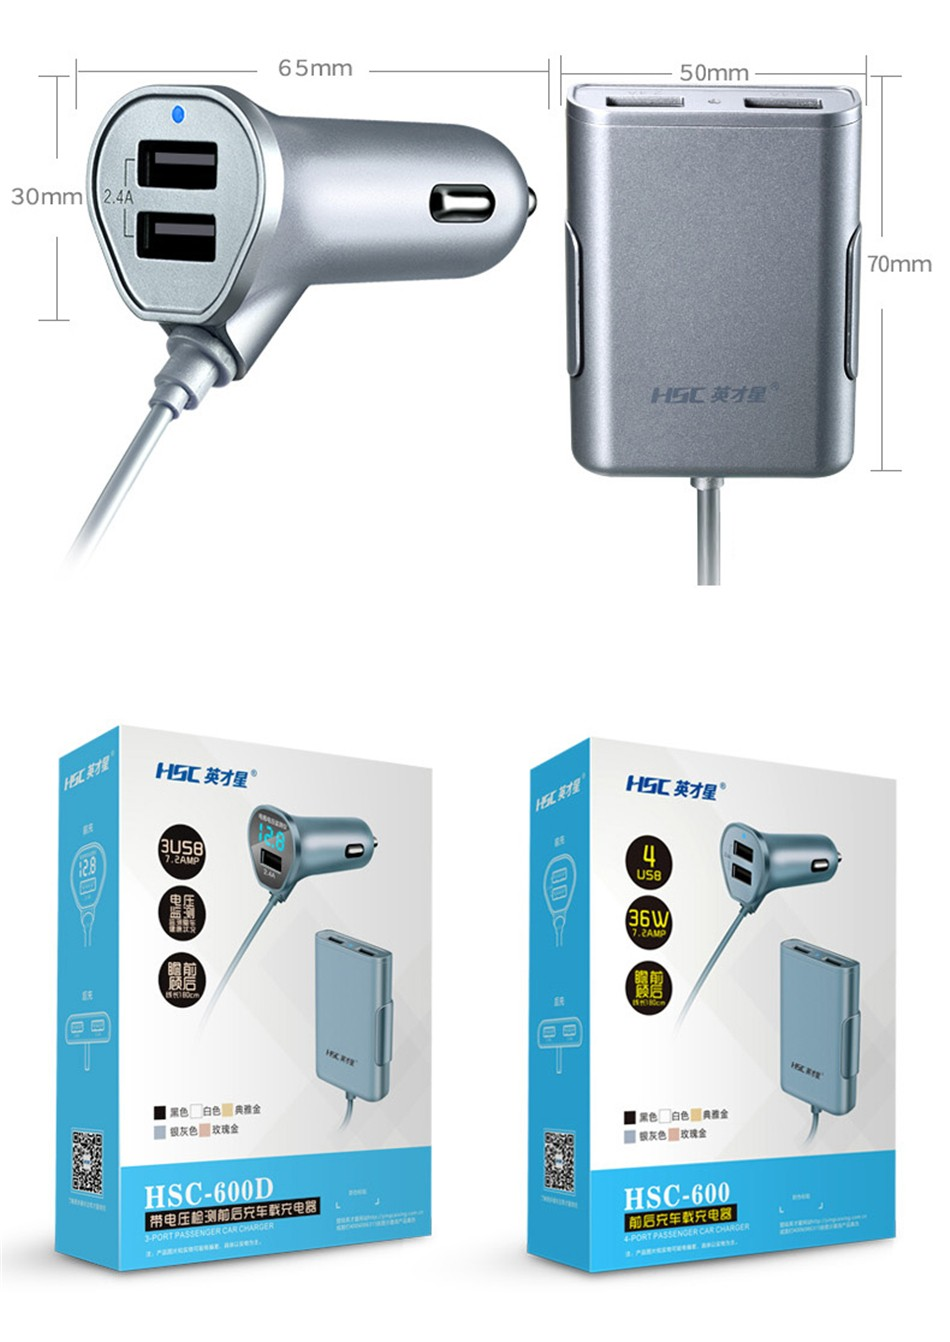 Brand HSC-600 car-charger 4 USB 4.8A Lengthen 1.8 meters , car charger for ipad iphone 5 5s 6 6s and samsung phone (15)